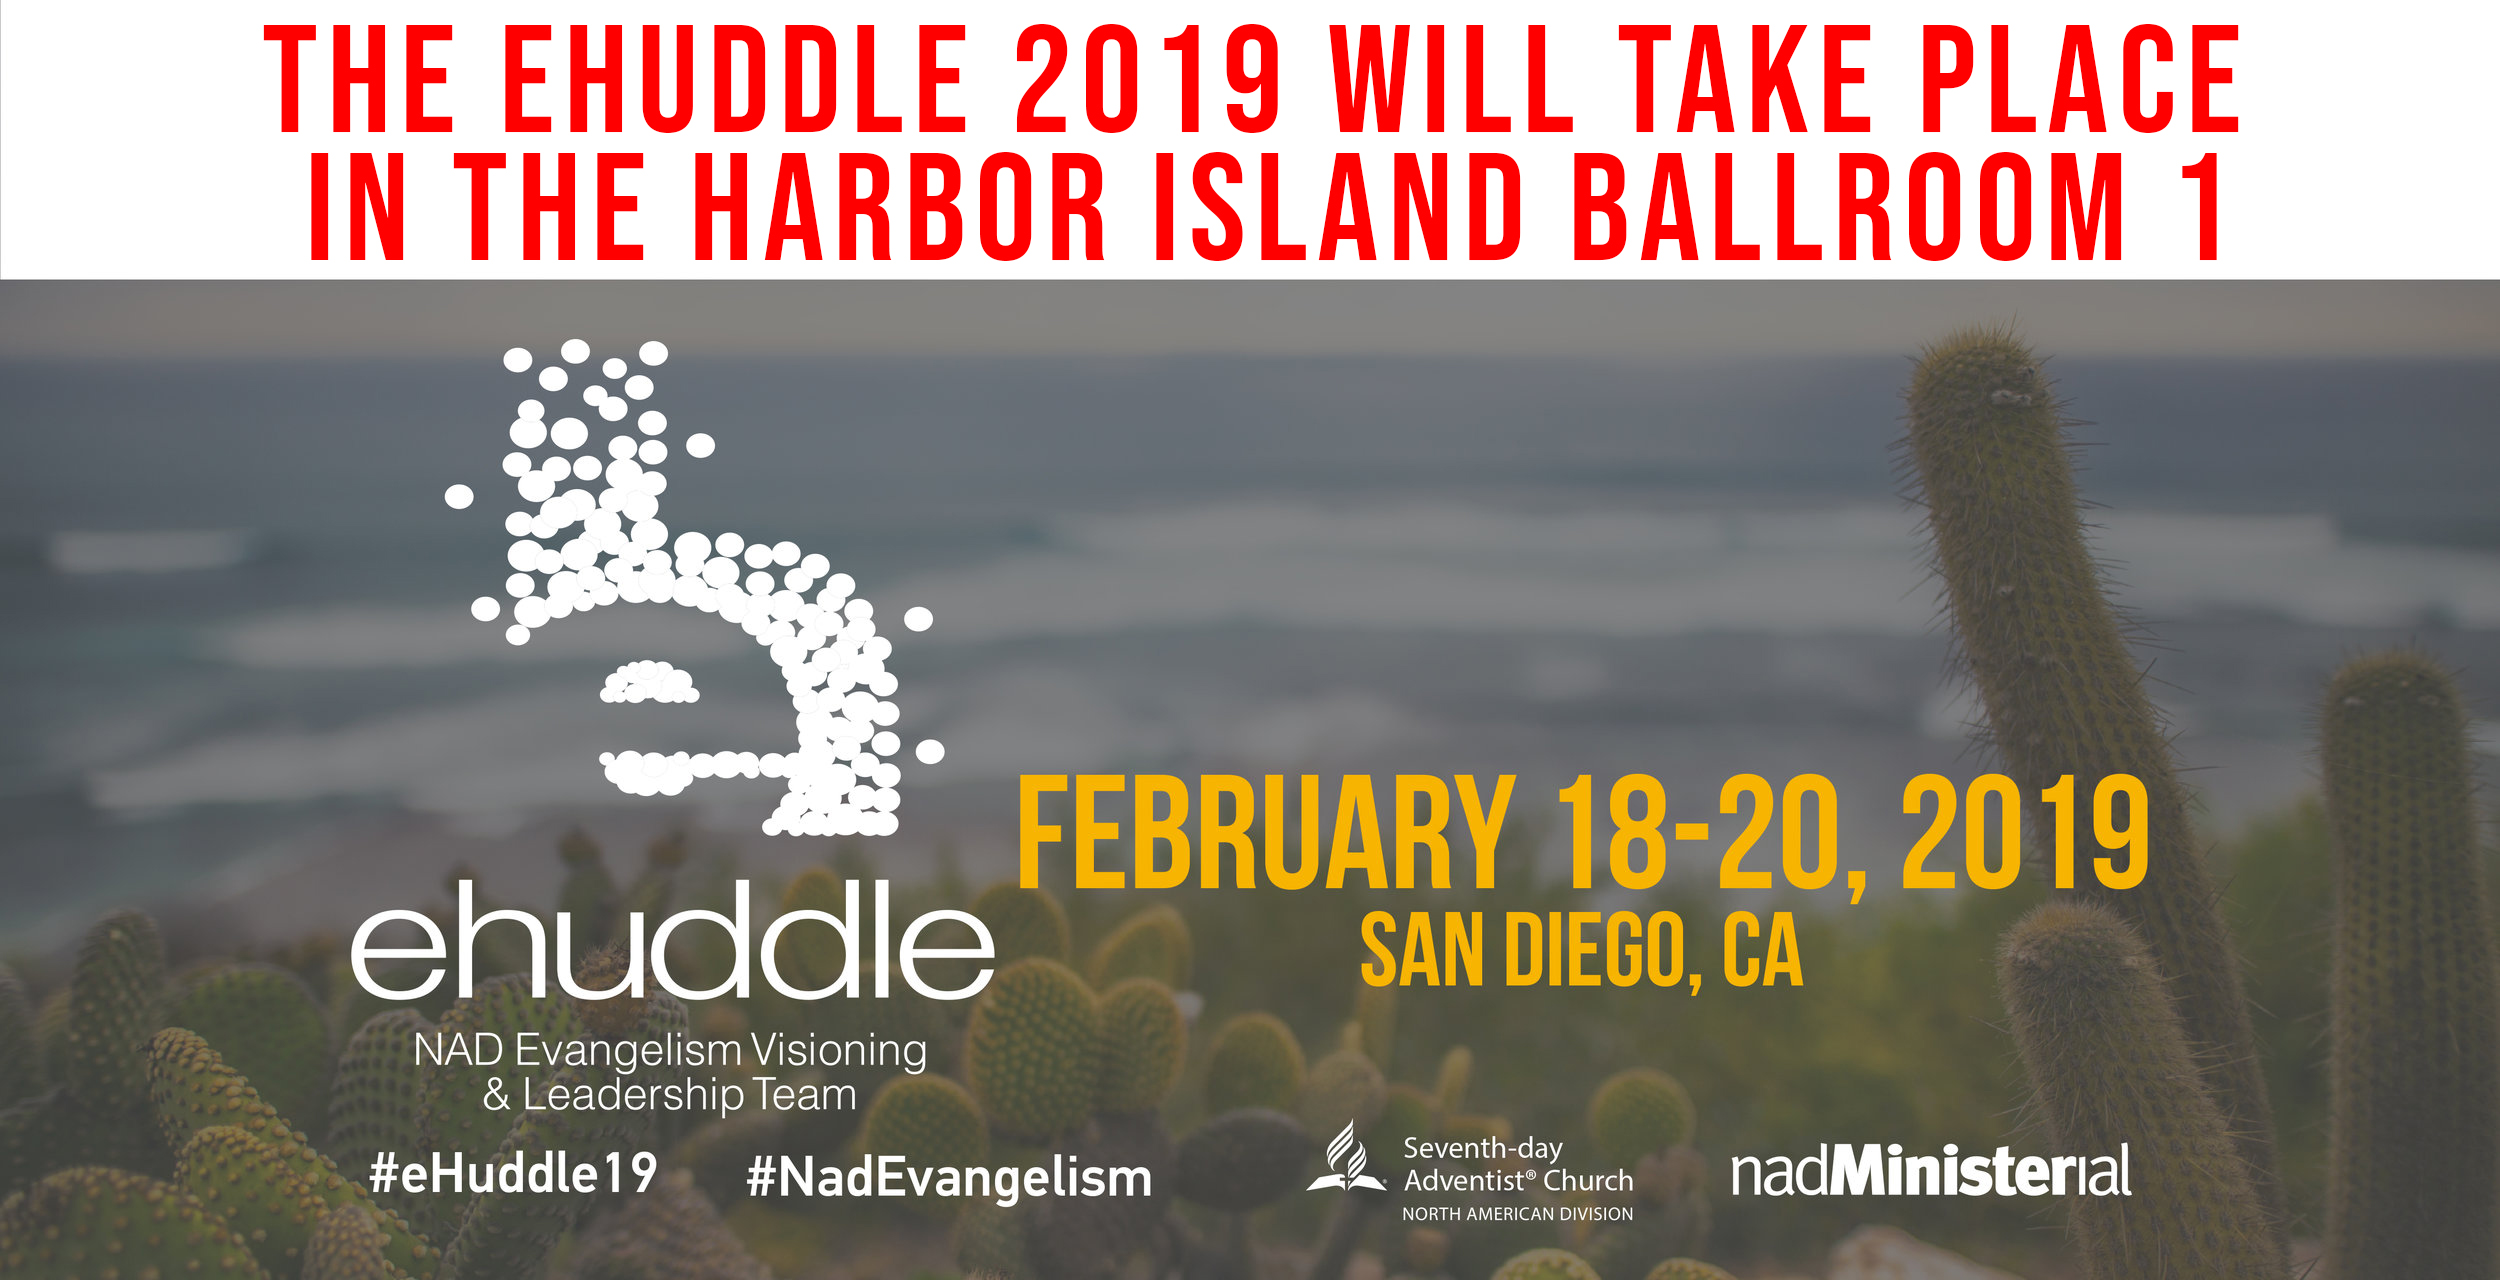 eHuddle2019-homepage copy.jpg